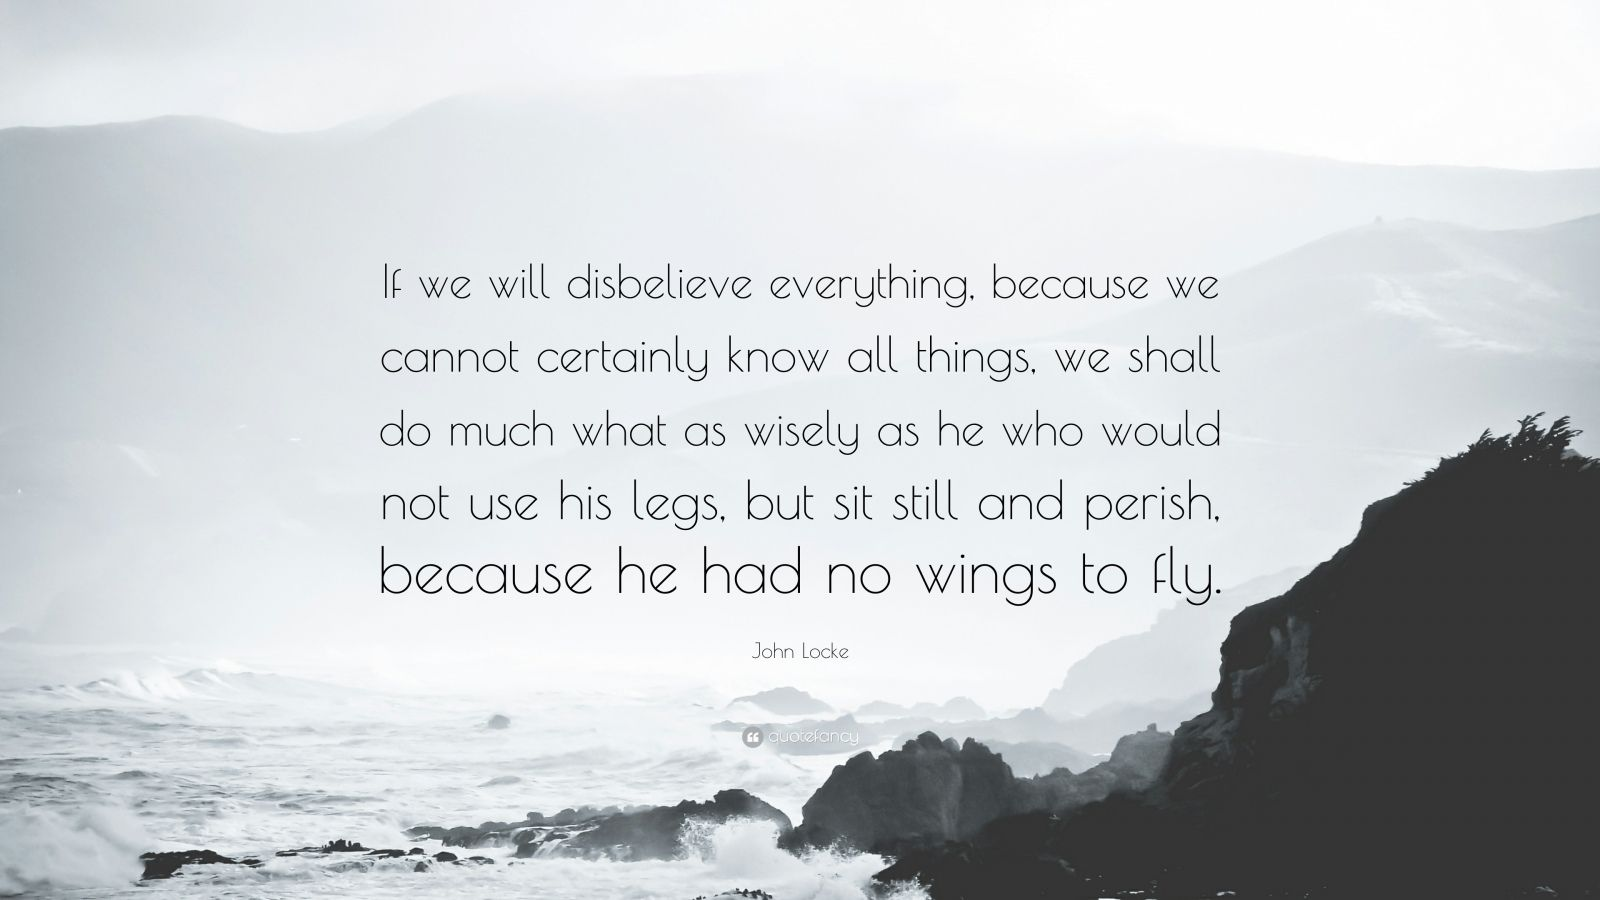 """John Locke Quote: """"If we will disbelieve everything, because we cannot certainly know all things, we shall do much what as wisely as he who would not use his legs, but sit still and perish, because he had no wings to fly."""""""